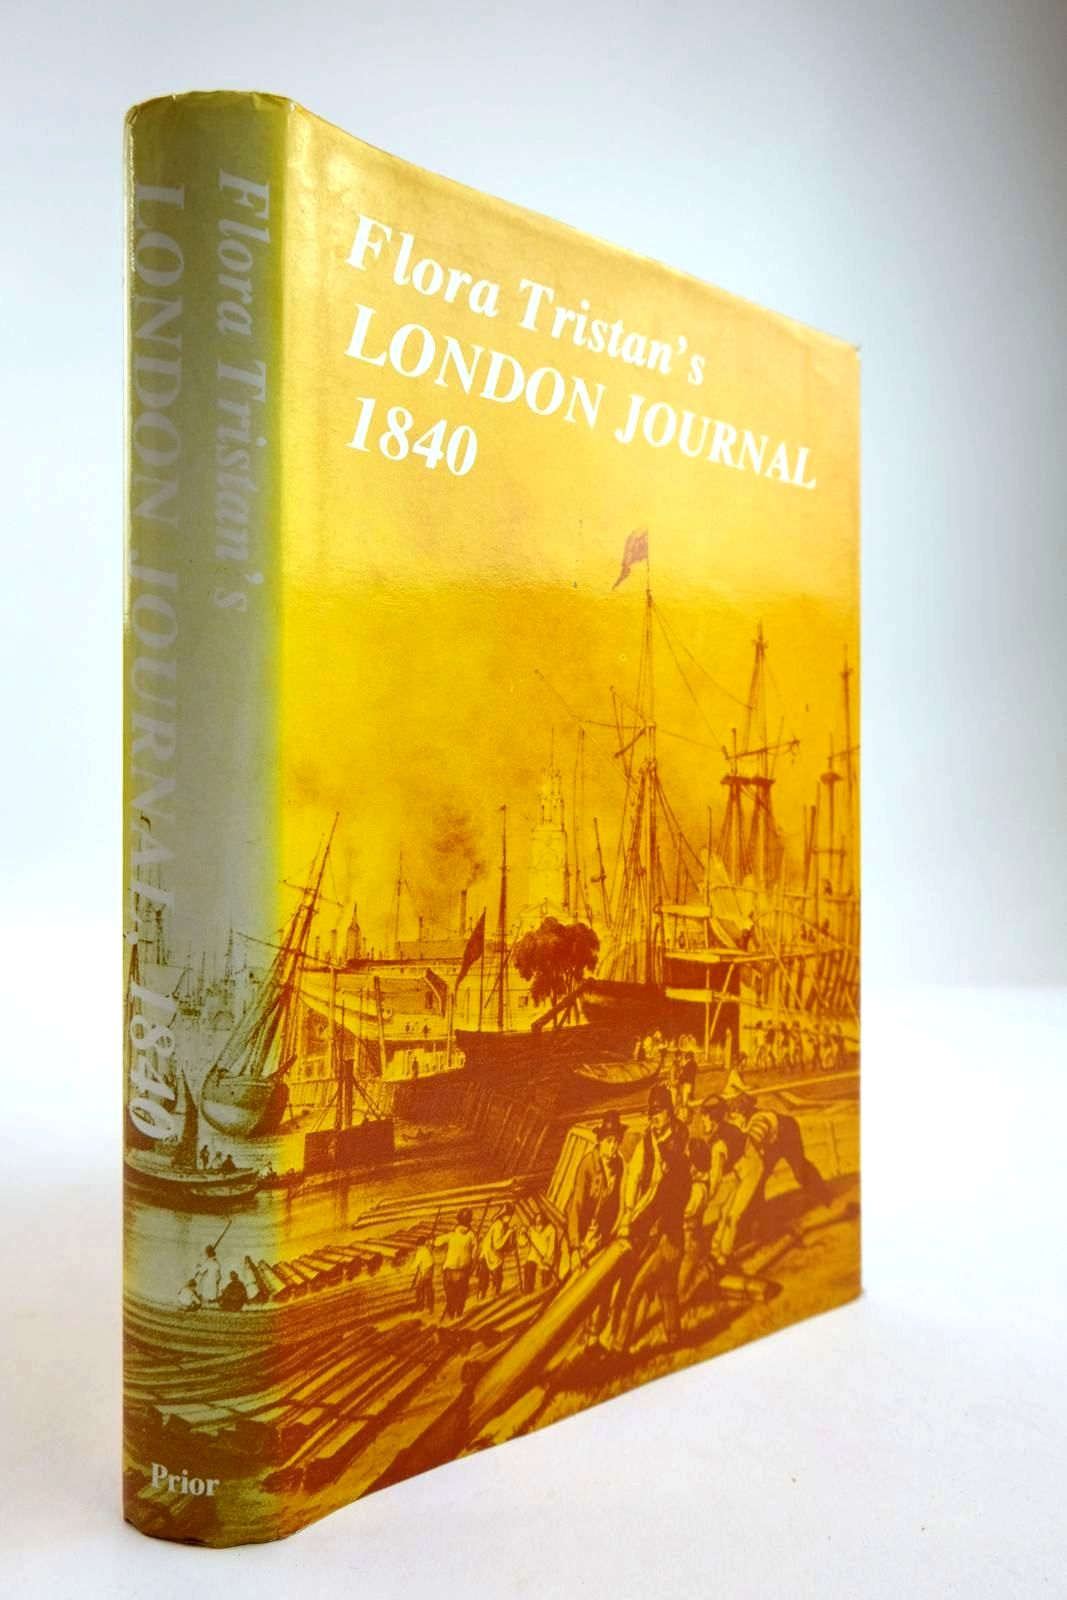 Photo of LONDON JOURNAL: A SURVEY OF LONDON LIFE IN THE 1830S written by Tristan, Flora published by Goerge Prior (STOCK CODE: 2133989)  for sale by Stella & Rose's Books